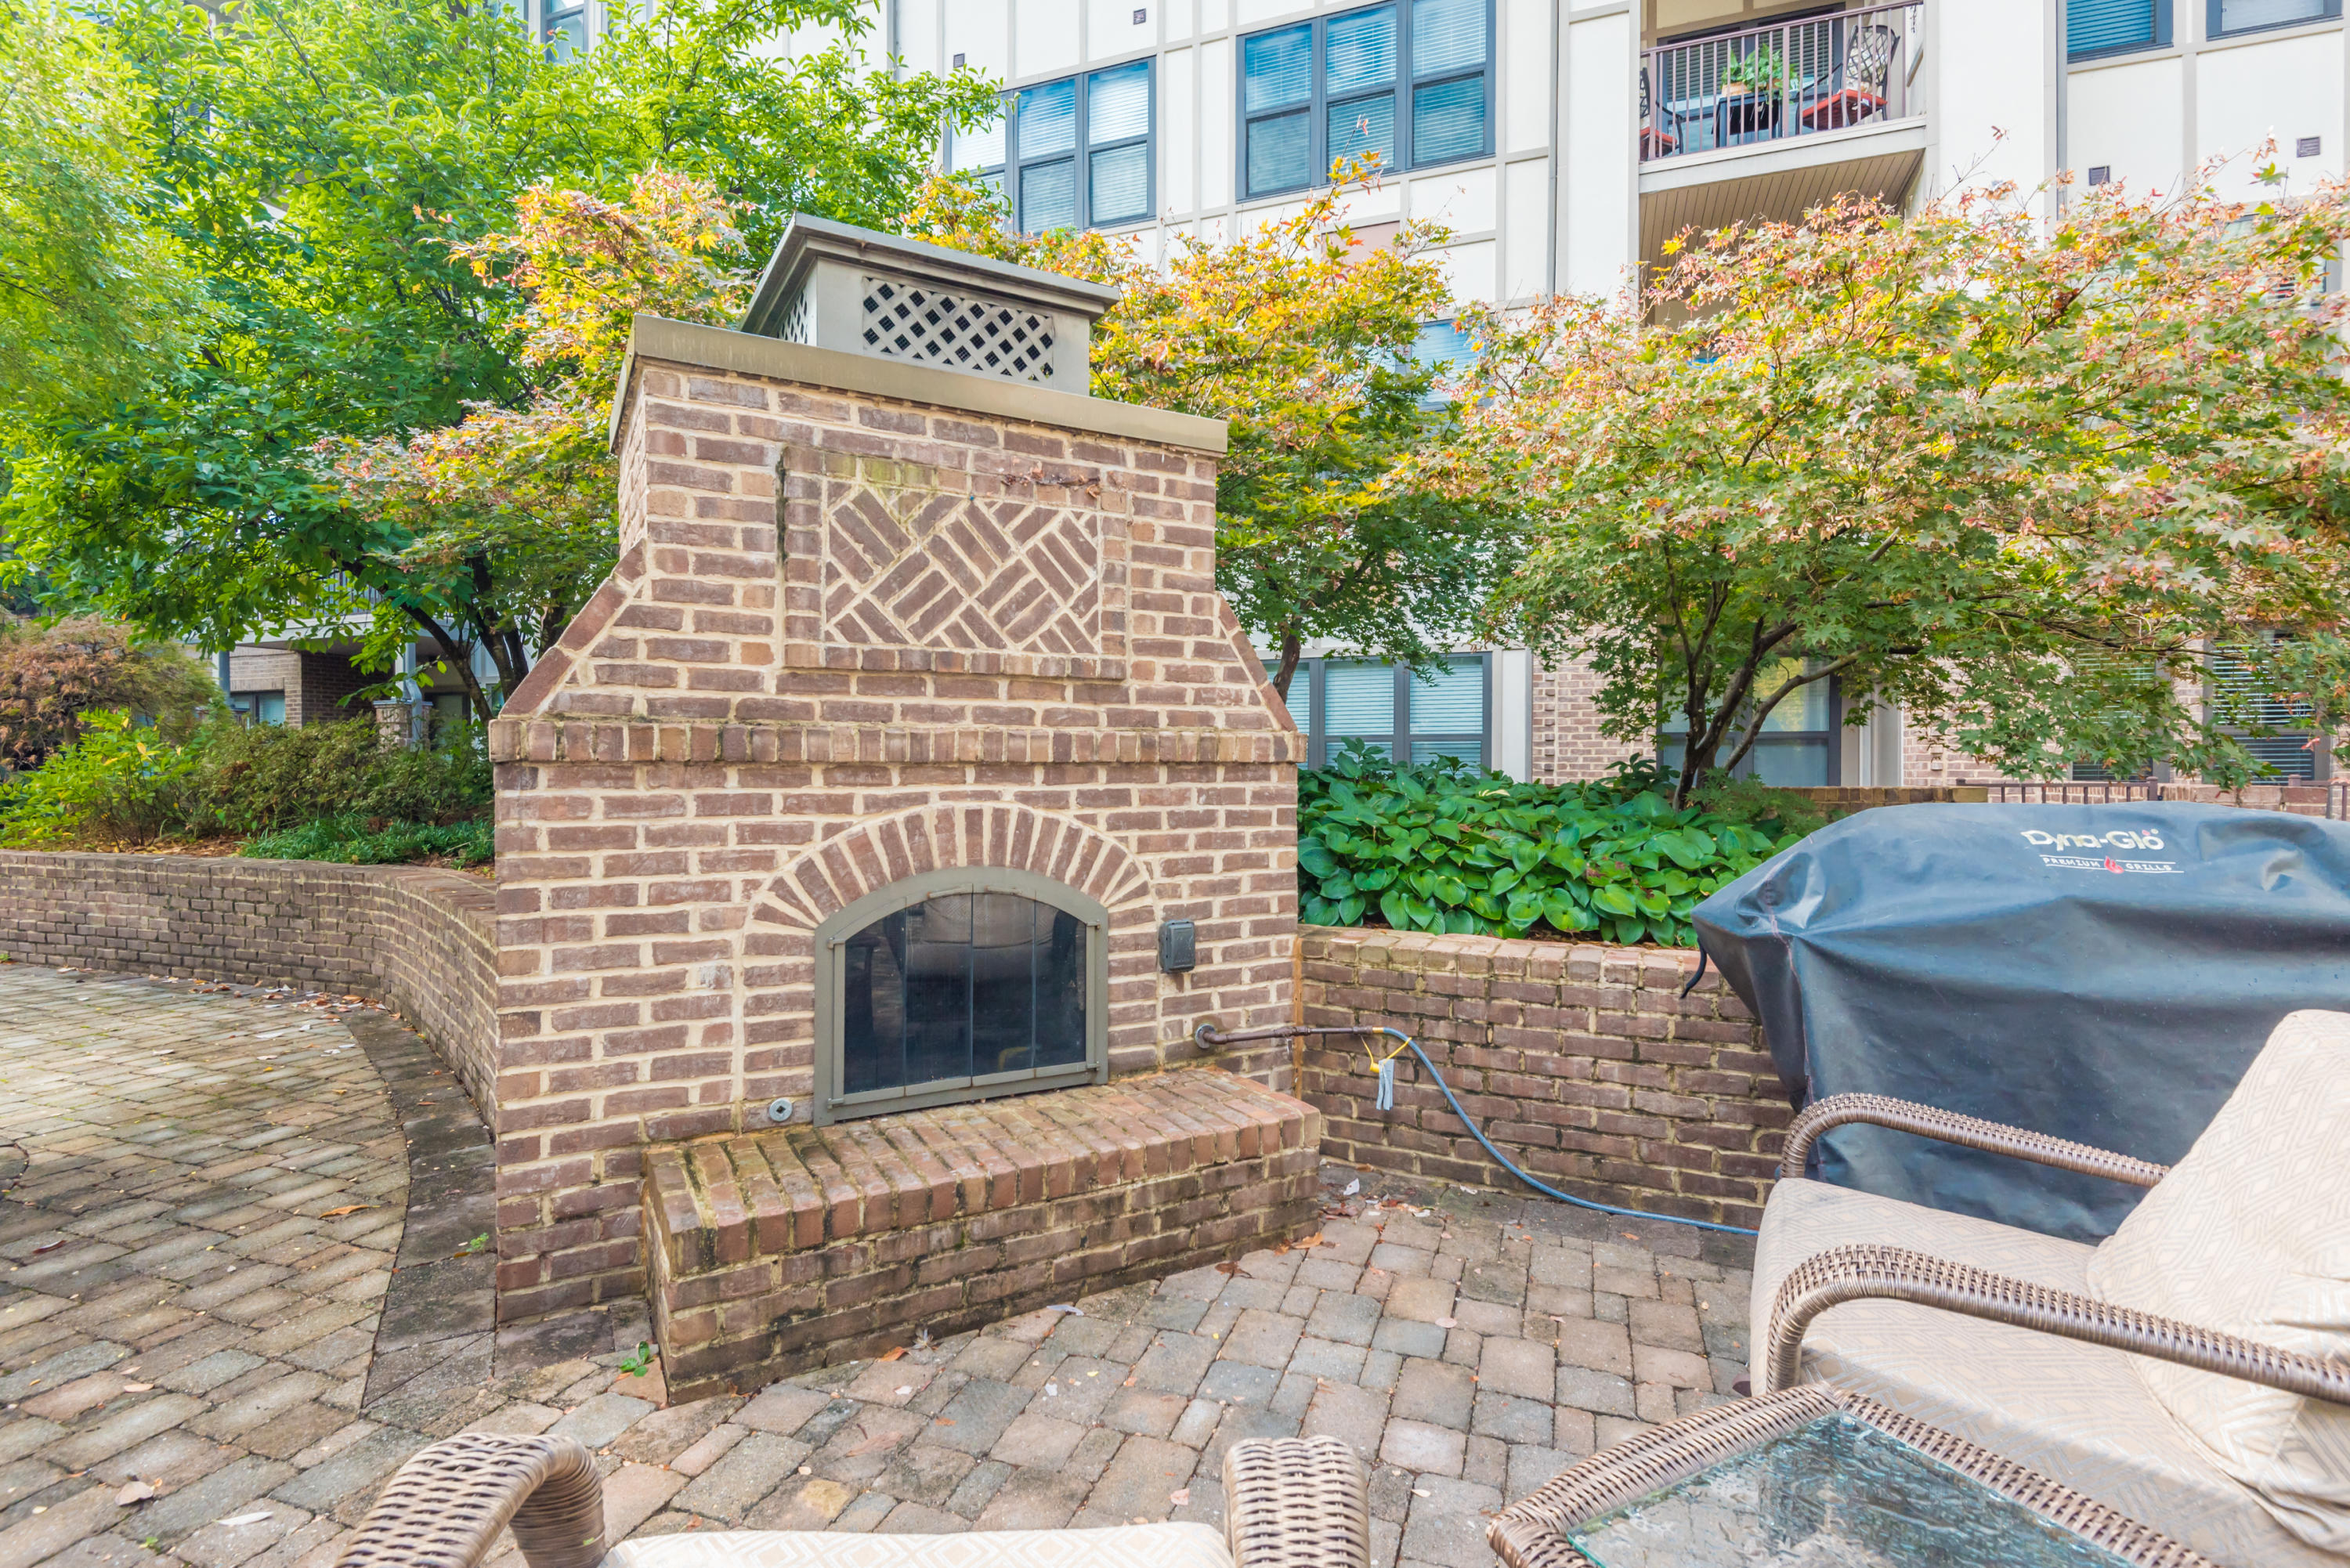 445 Blount Ave 408: